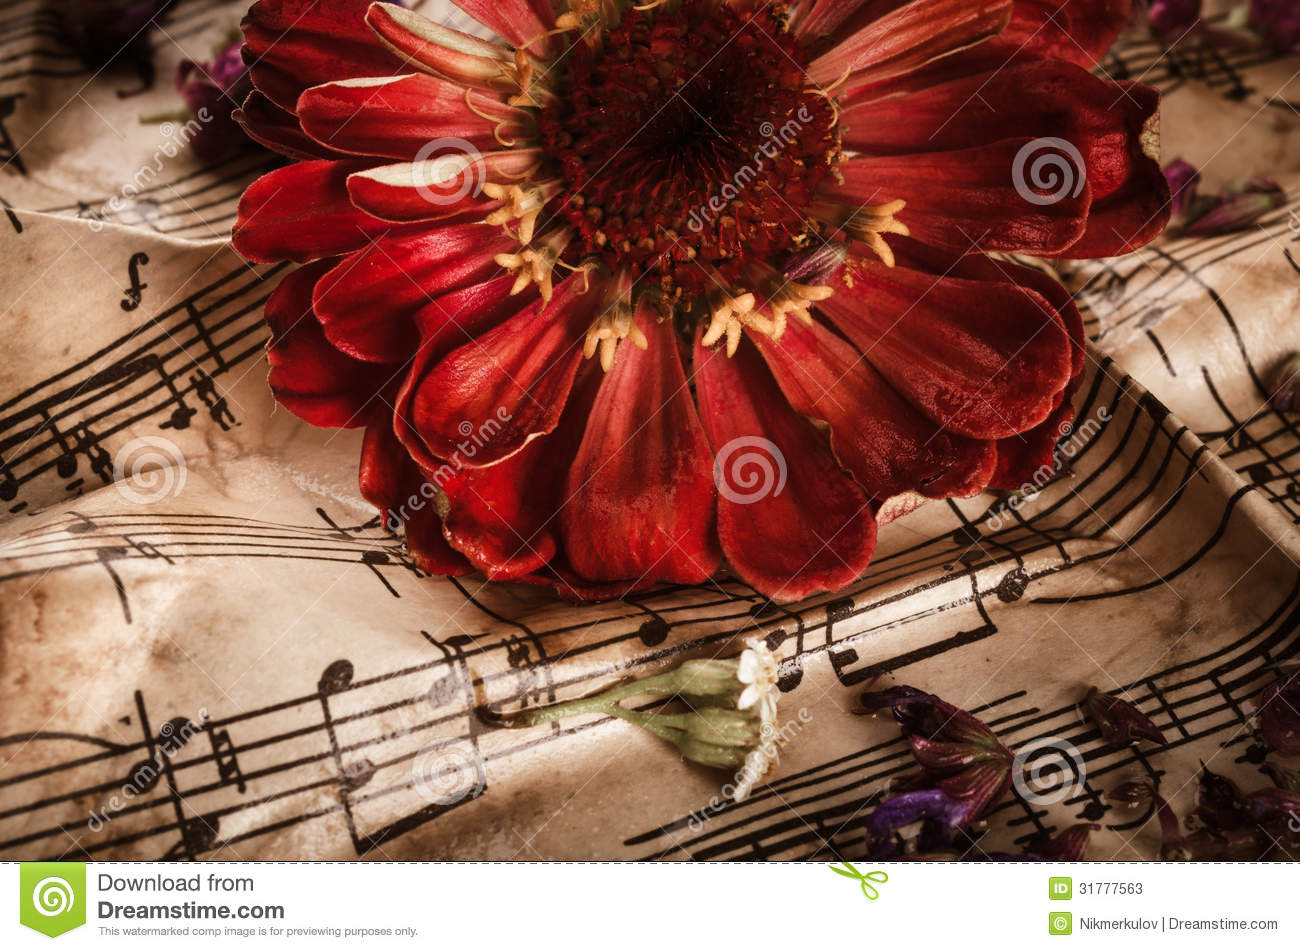 music notes backgrounds floral - photo #29